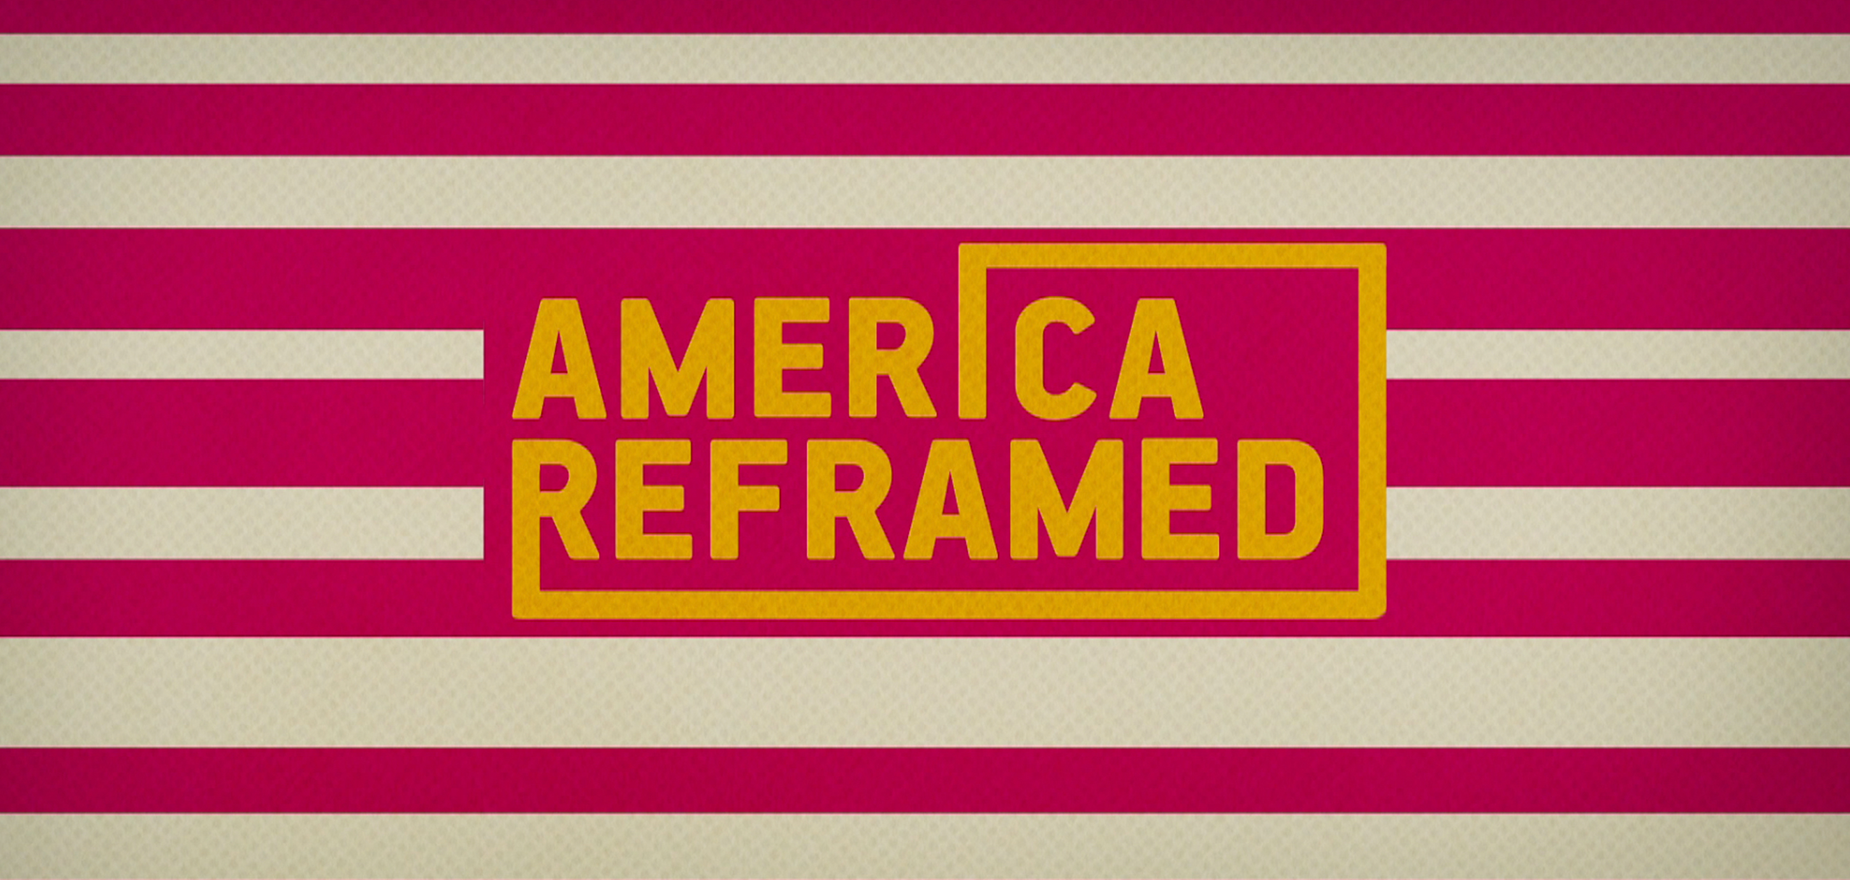 America Reframed: Deej - American Documentary, Inc., WORLD Channel, Rooy Media LLC, Independent Television Service (ITVS)